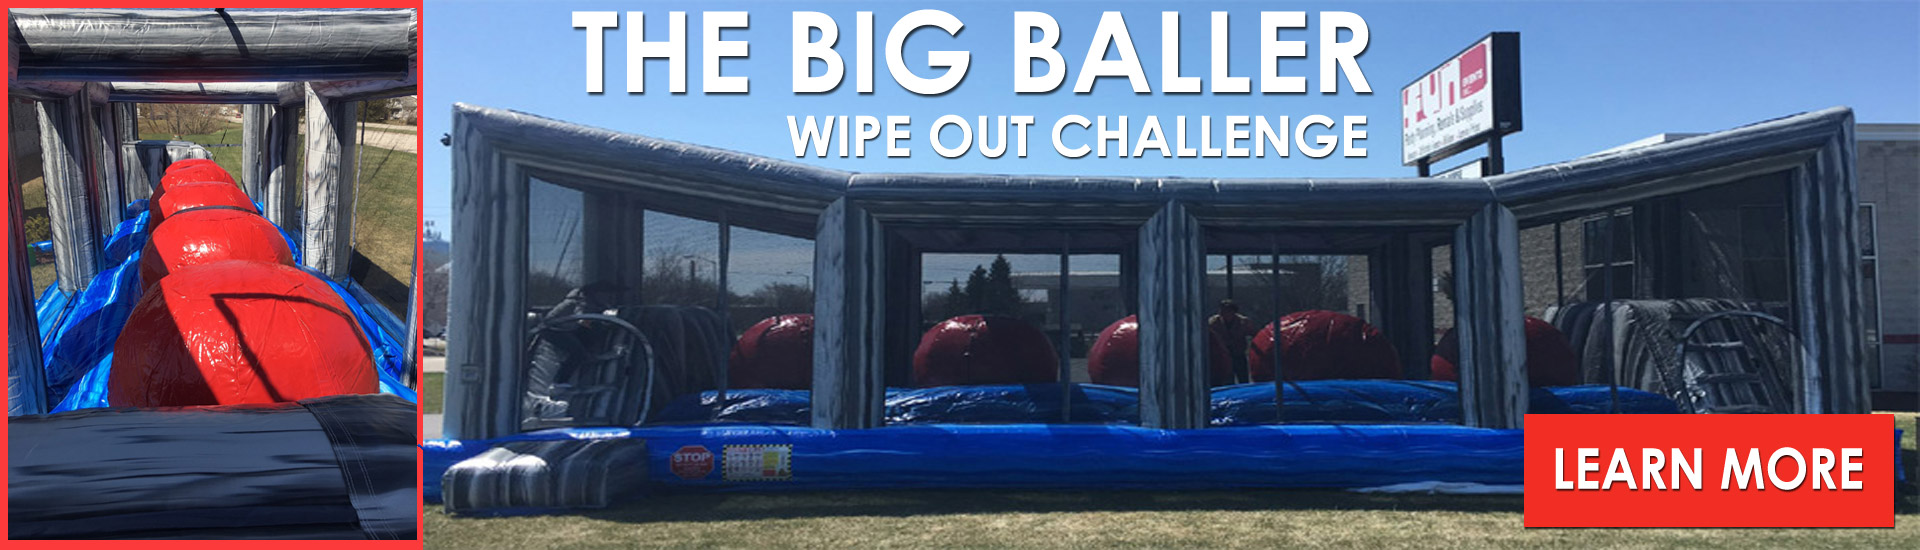 Big Baller Wipe Out Inflatable Obstacle Challenge